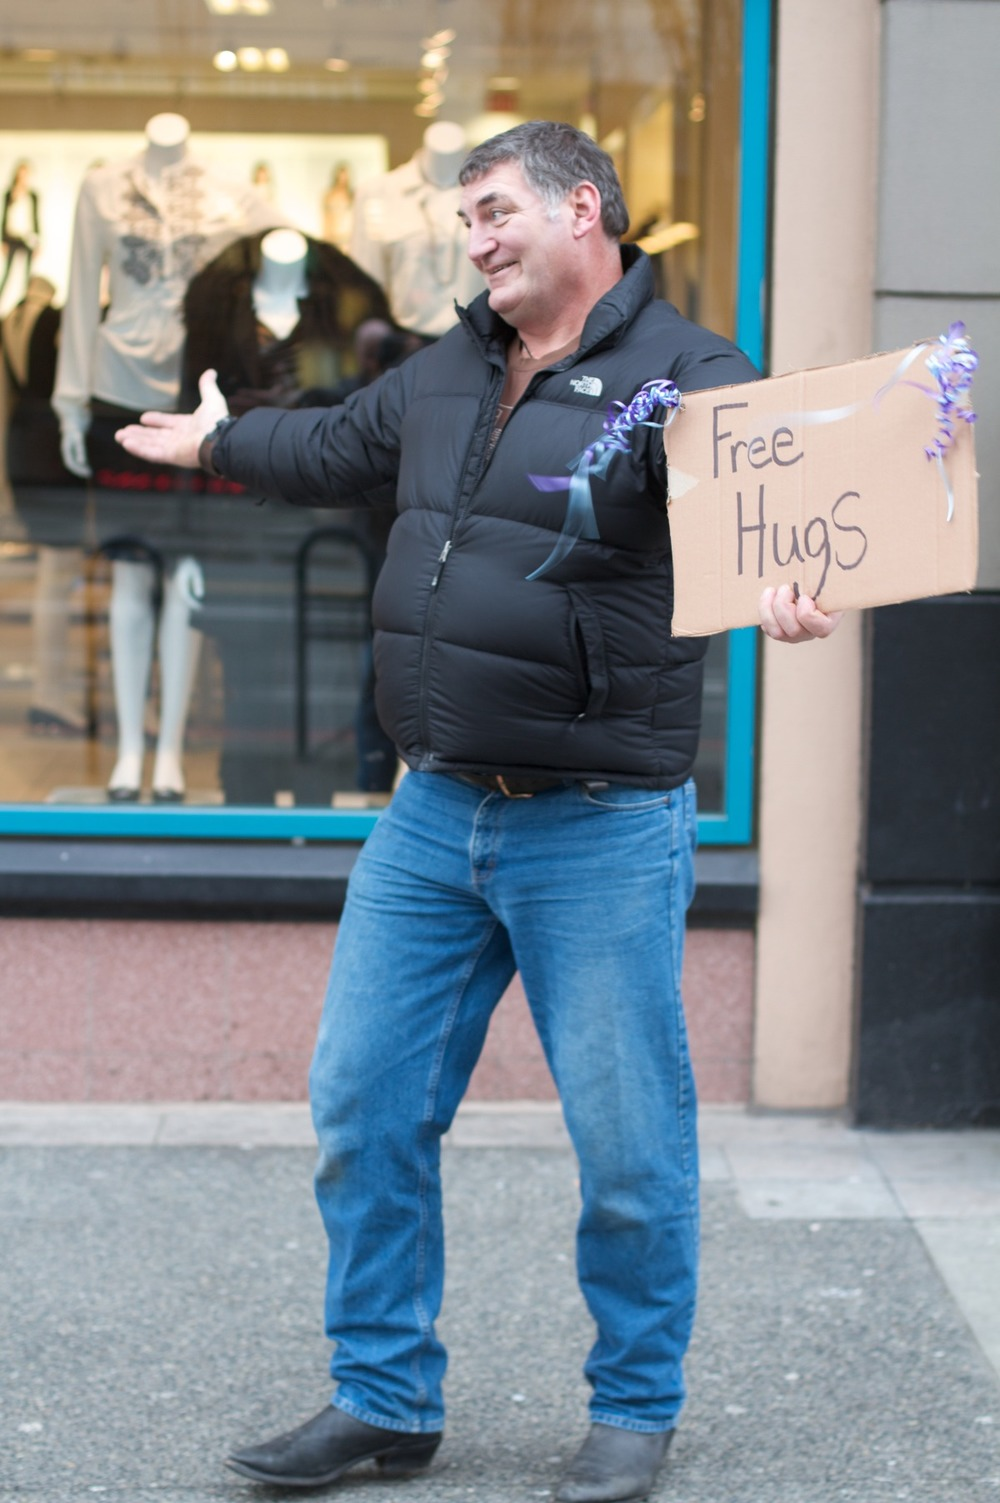 2010-12-18 at 10-47-57 hugs man street life.jpg